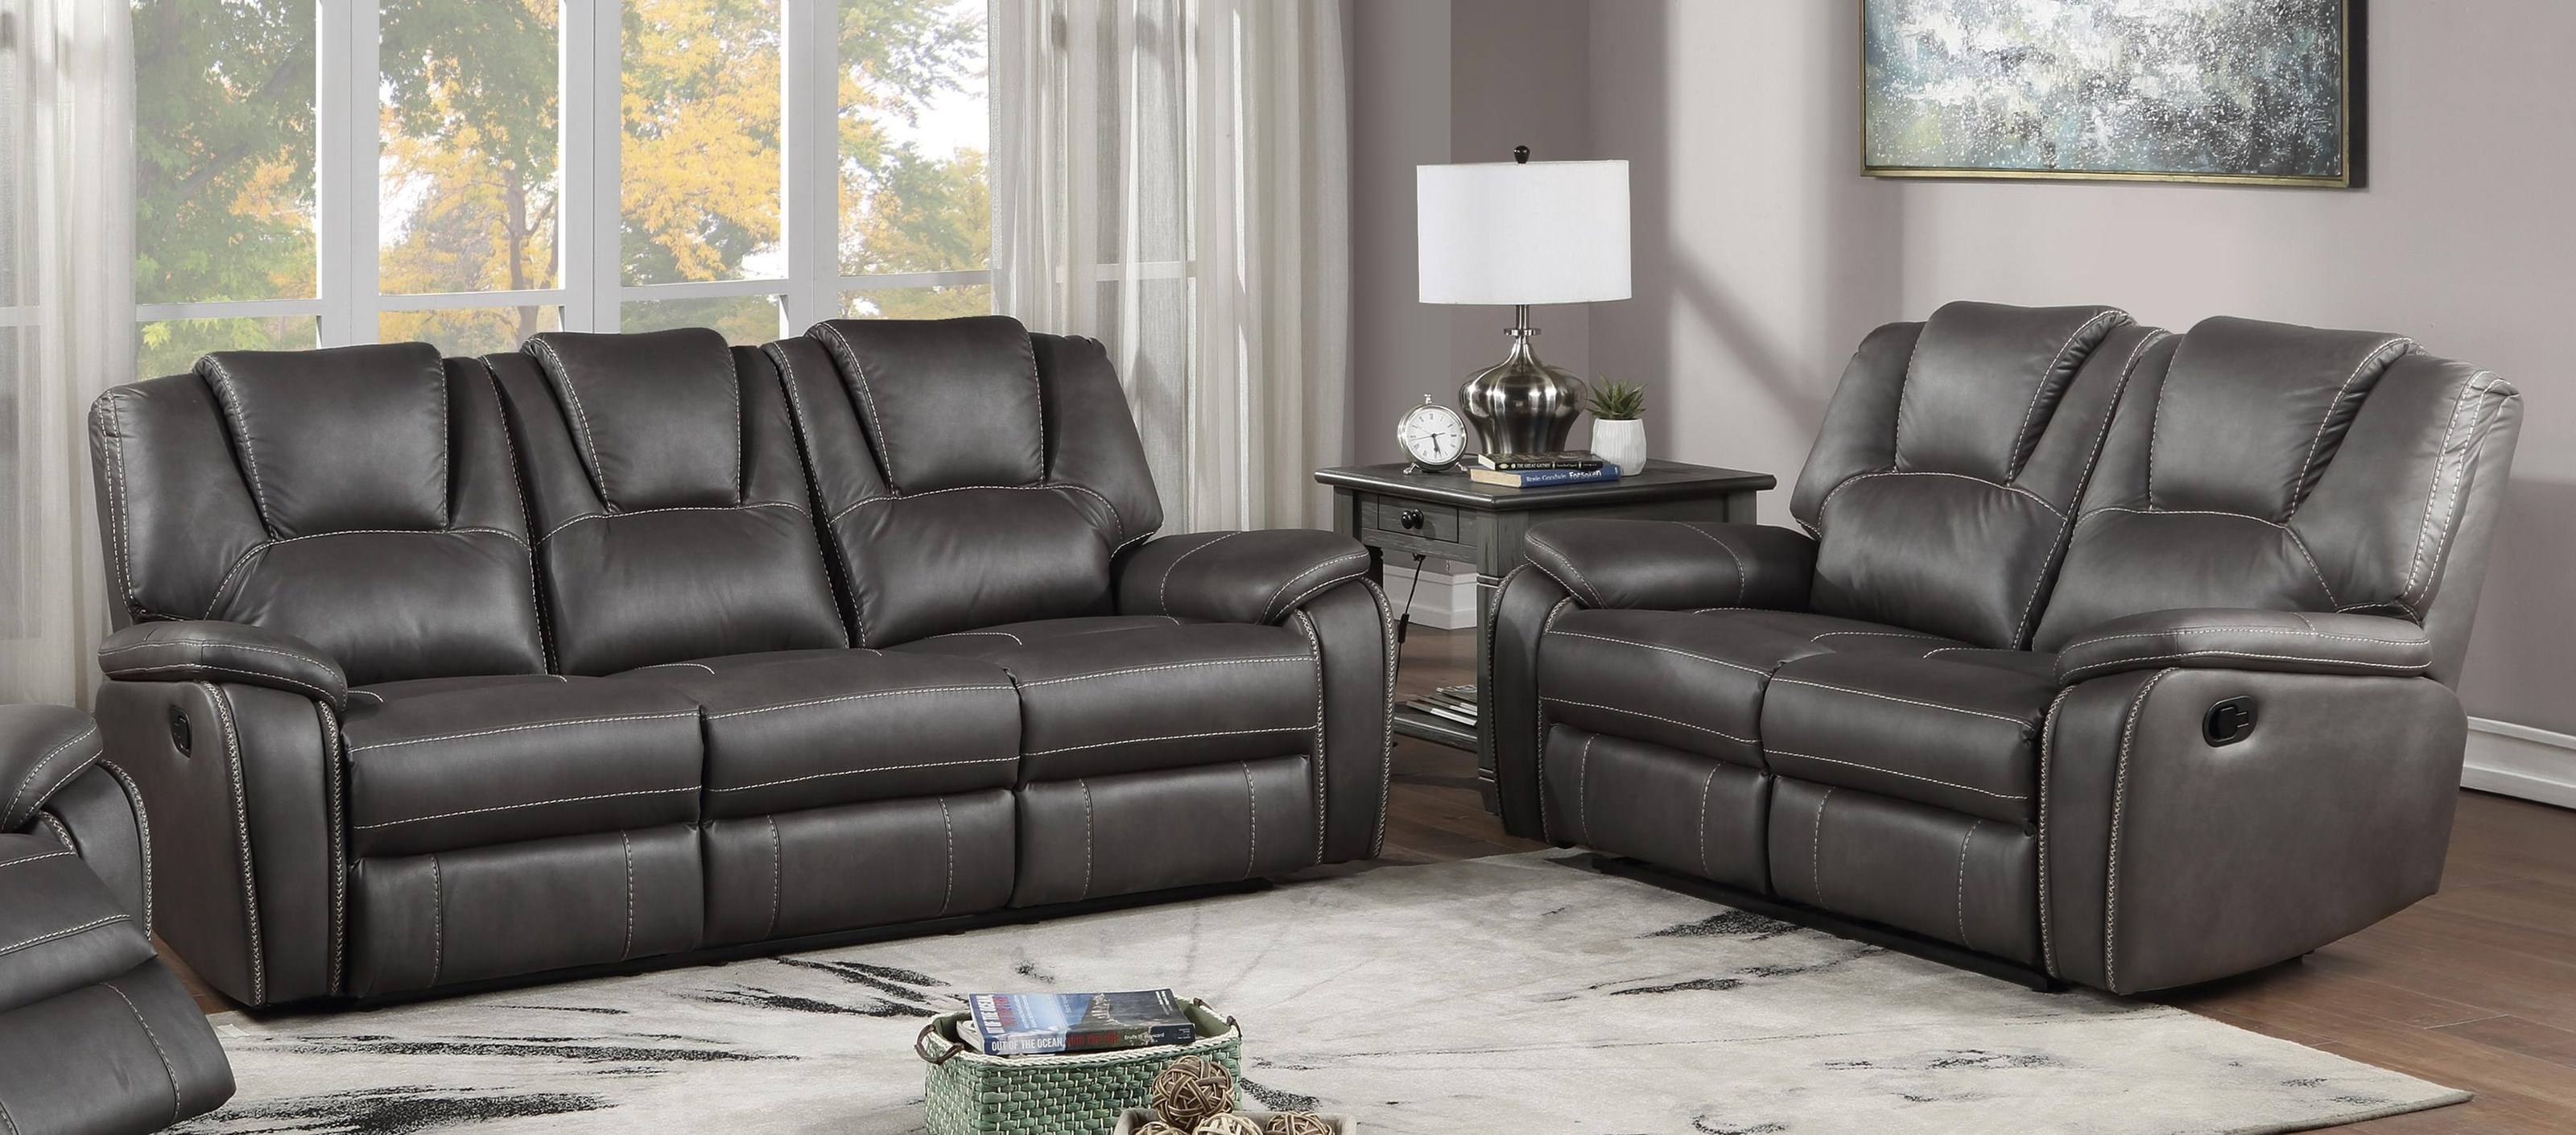 Picture of: Steve Silver Katrine Kt800sc Lc Reclining Sofa And Loveseat Set Sam Levitz Furniture Reclining Living Room Groups